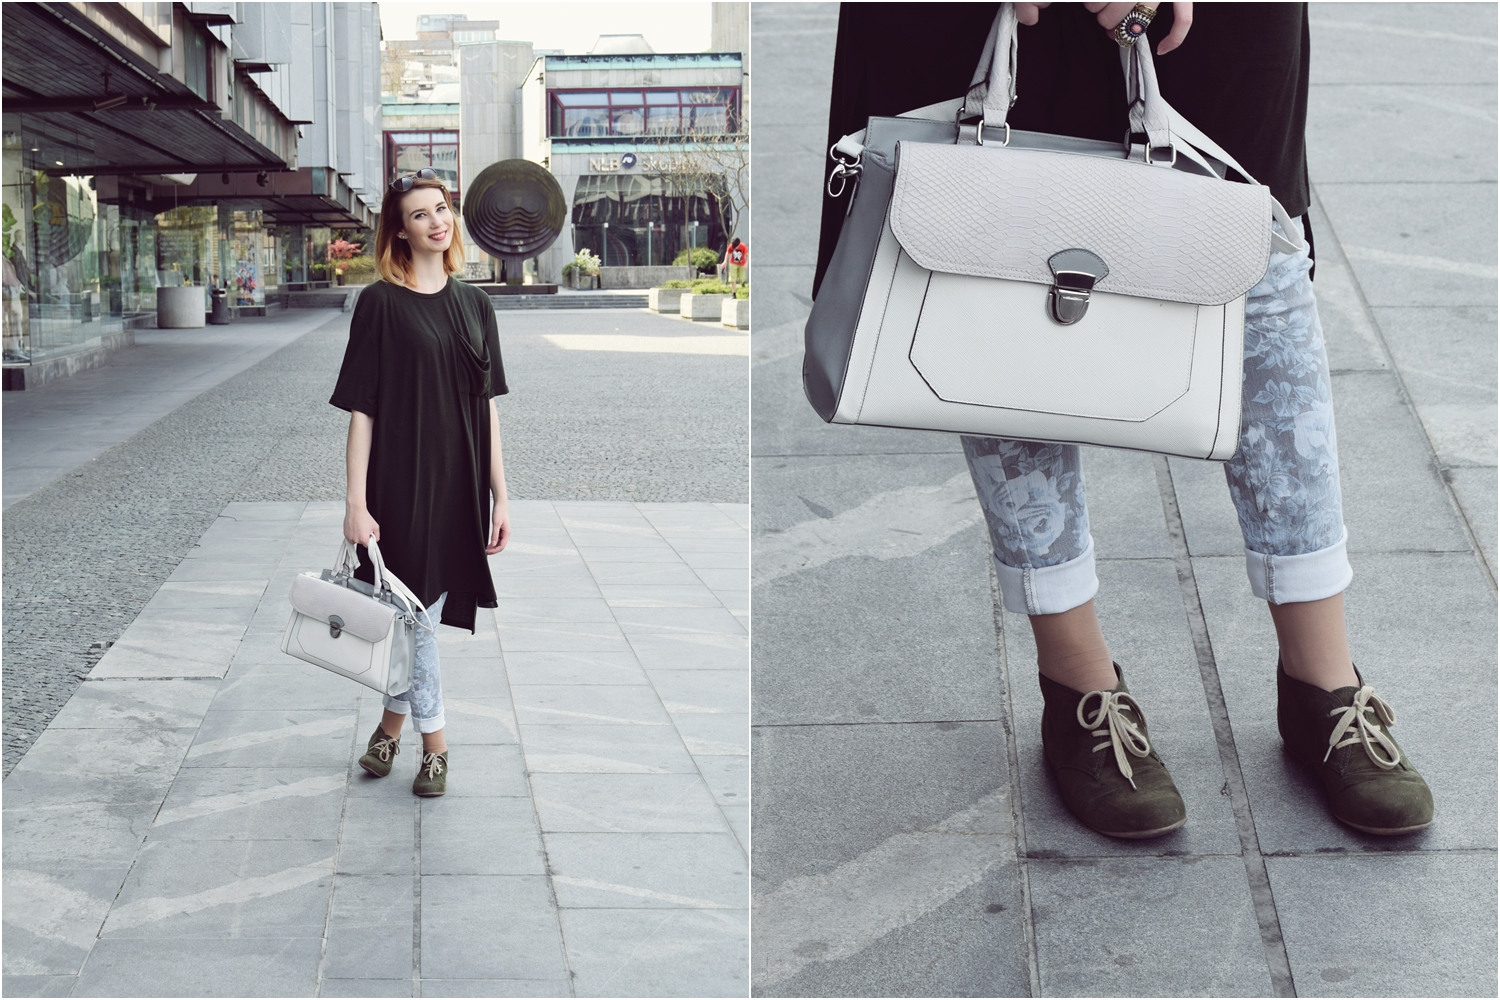 Spring_street_Style_Fashion_Zalabell_1